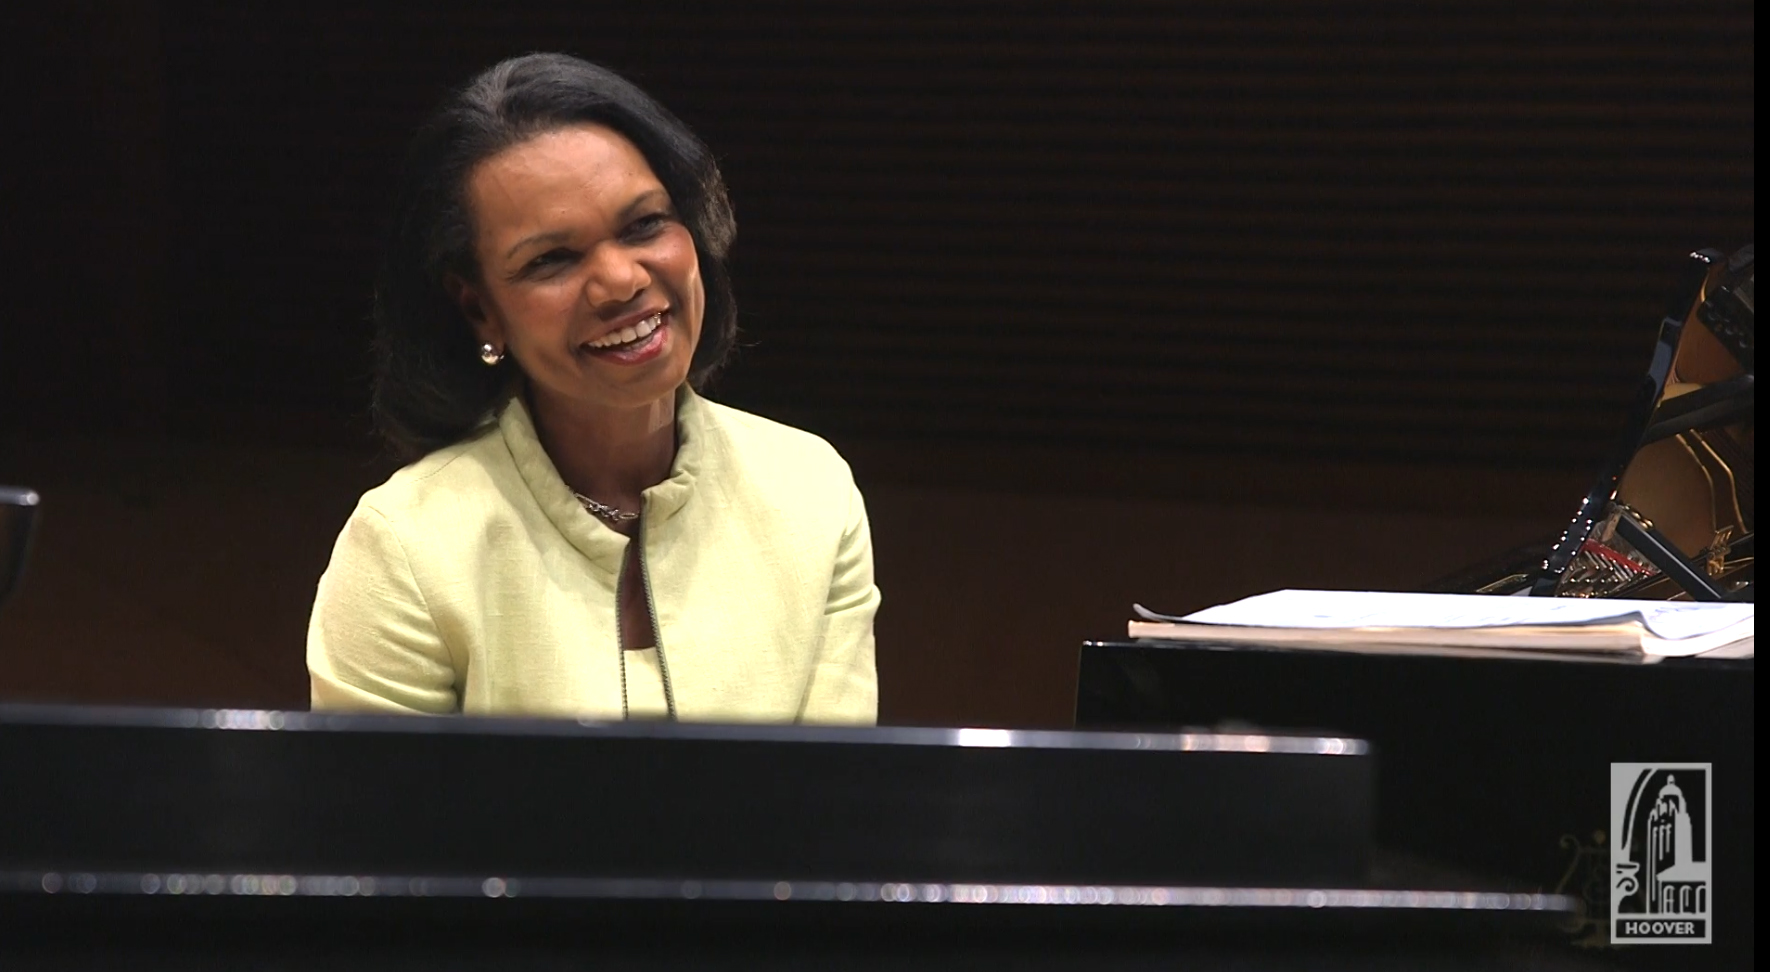 Condoleezza Rice's Feel